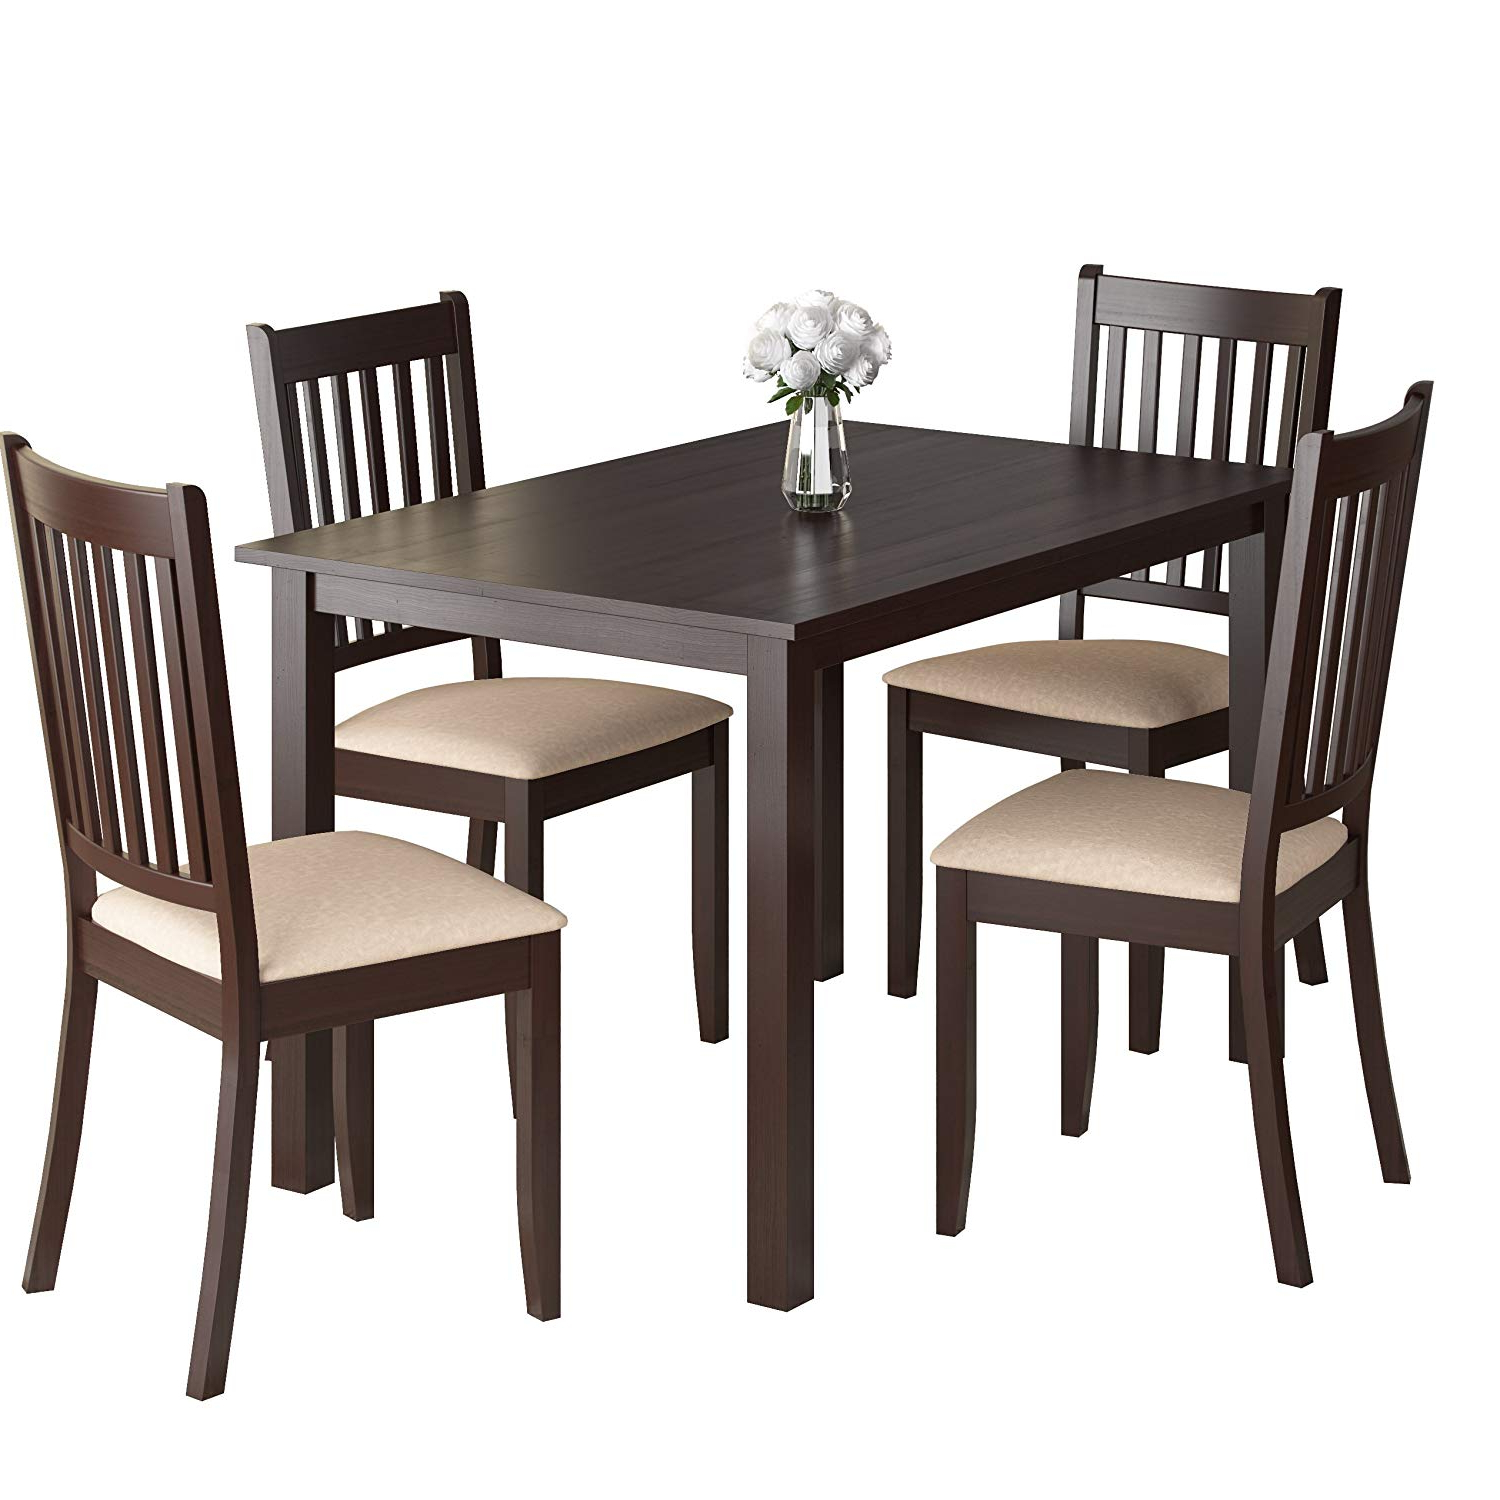 Atwood Transitional Rectangular Dining Tables Intended For Latest Amazon – Corliving Drg 595 Z Atwood Dining Set, Brown (View 2 of 25)